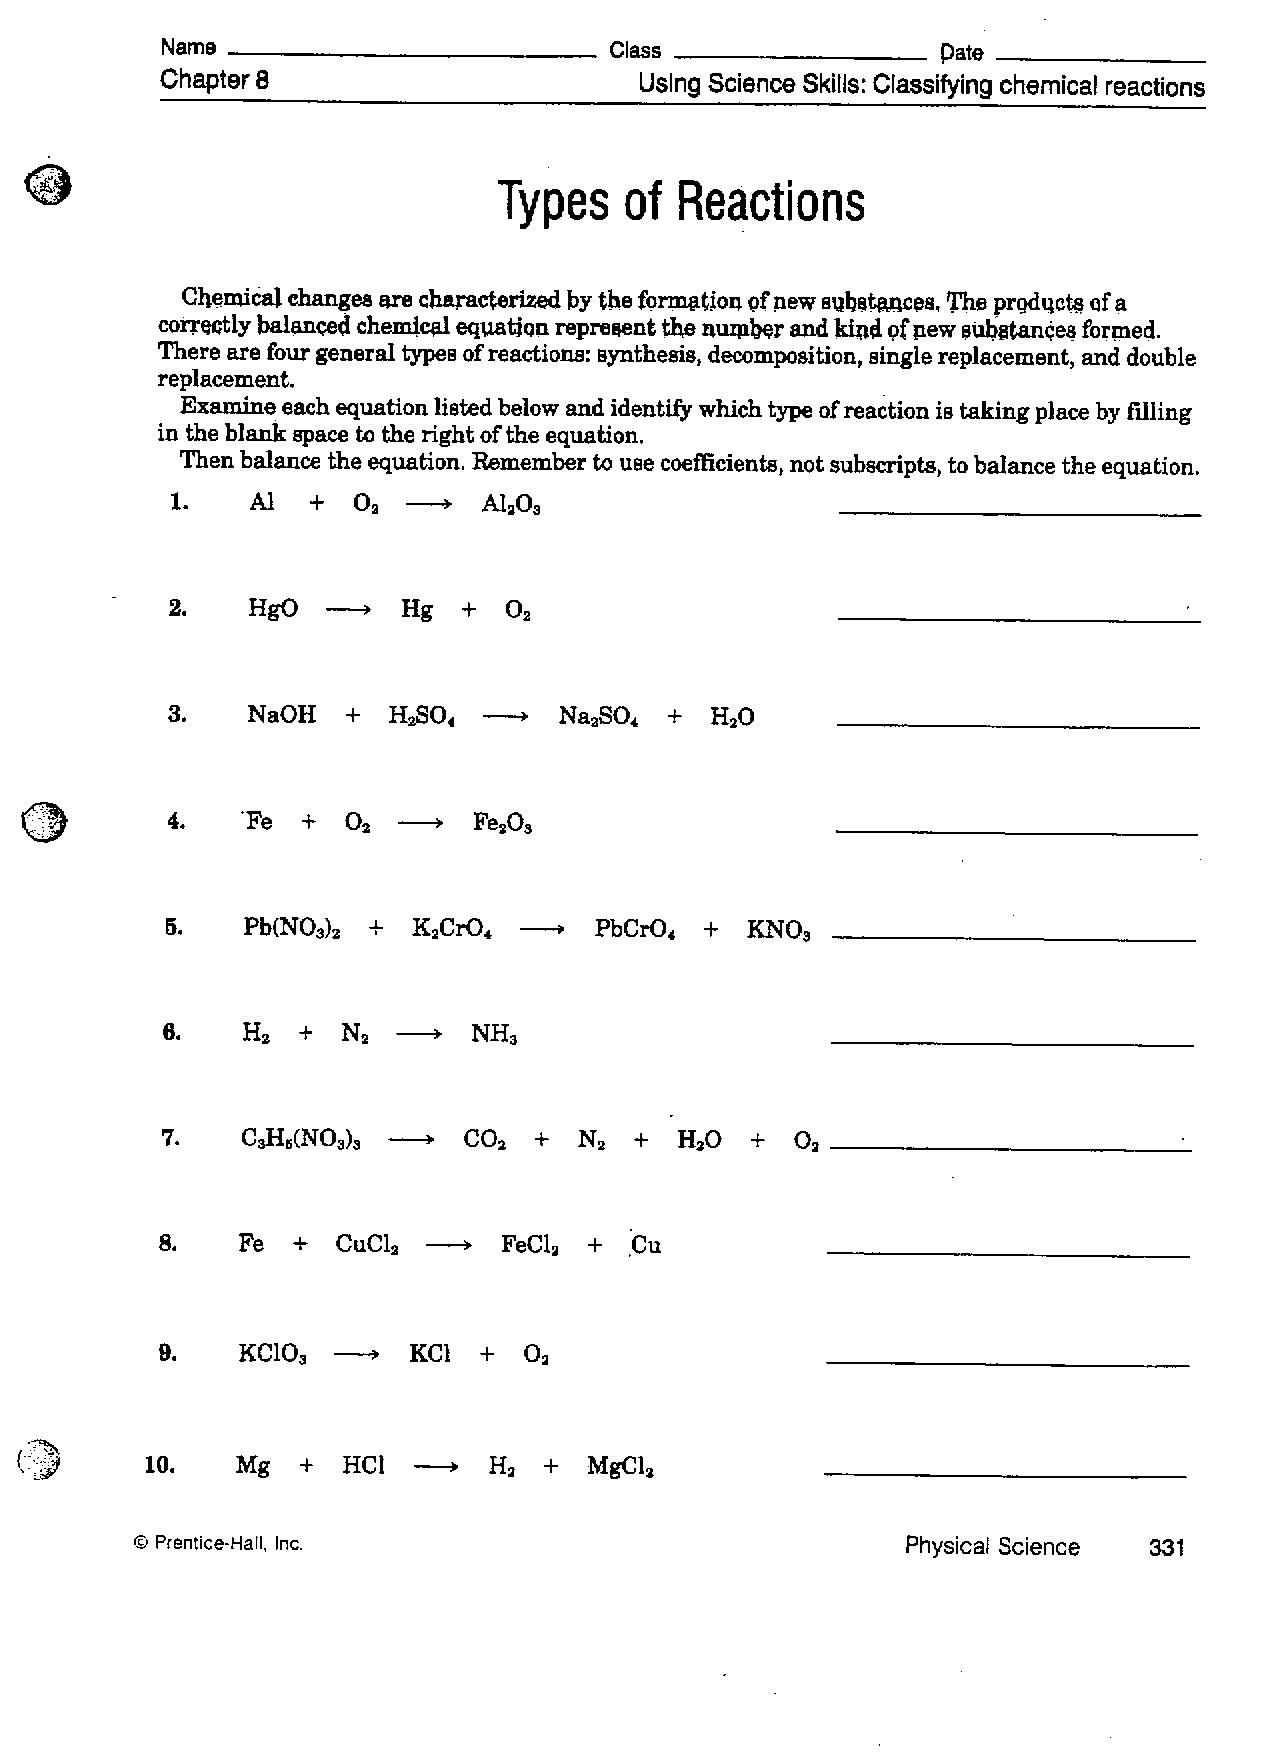 Classification of chemical reactions worksheet key